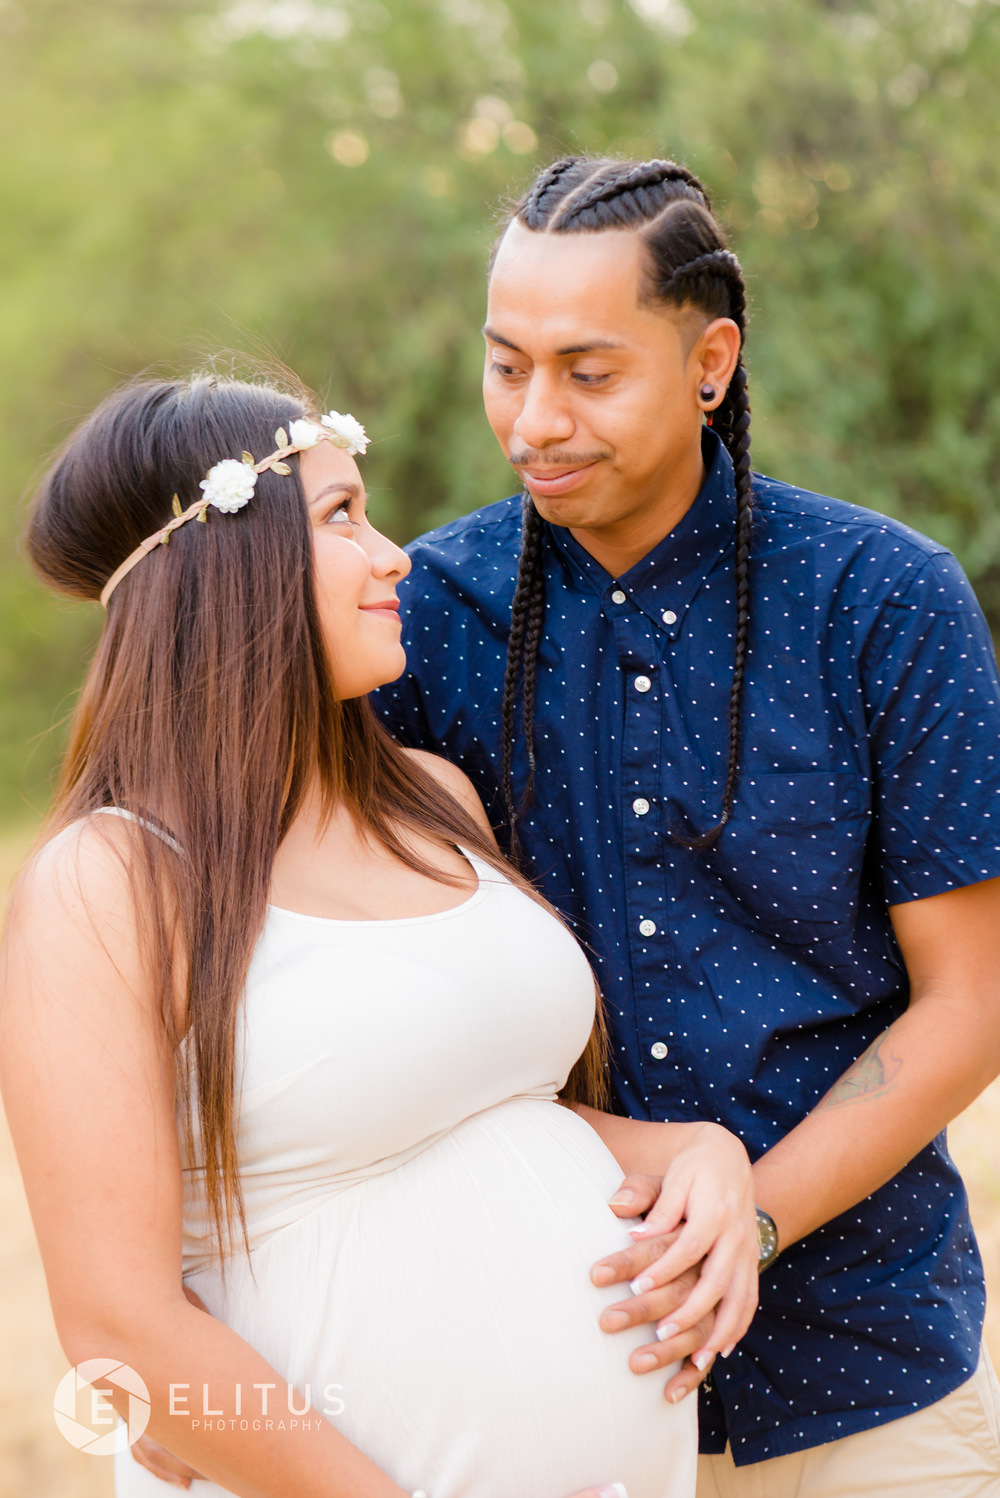 elitusphotography-ramirez-maternity (13 of 23).jpg